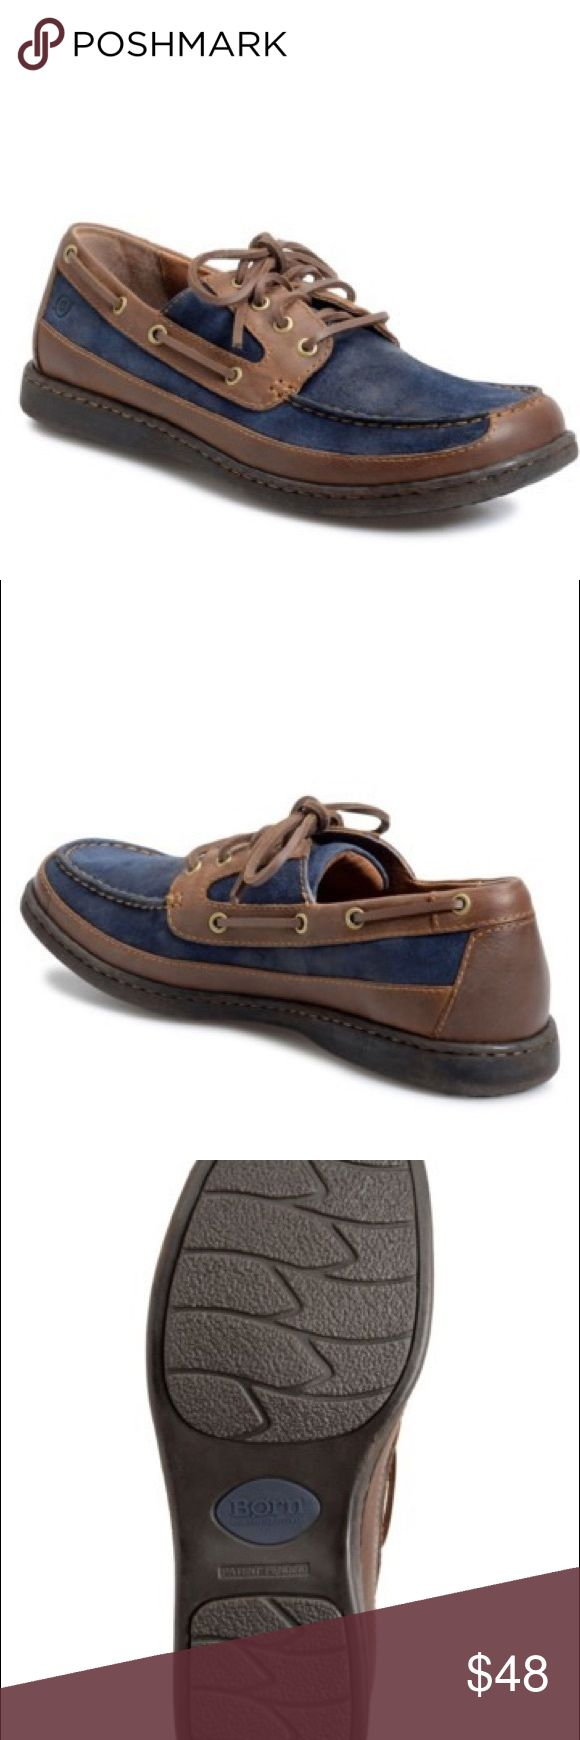 Born size 13 Men's shoes Details Hand-sewn construction elevates a versatile boat shoe paneled in rich suede and leather with a moisture-wicking liner for all-day comfort.  True to size.  - Lace-up style - Leather and suede upper/leather lining/rubber sole - Imported Born Shoes